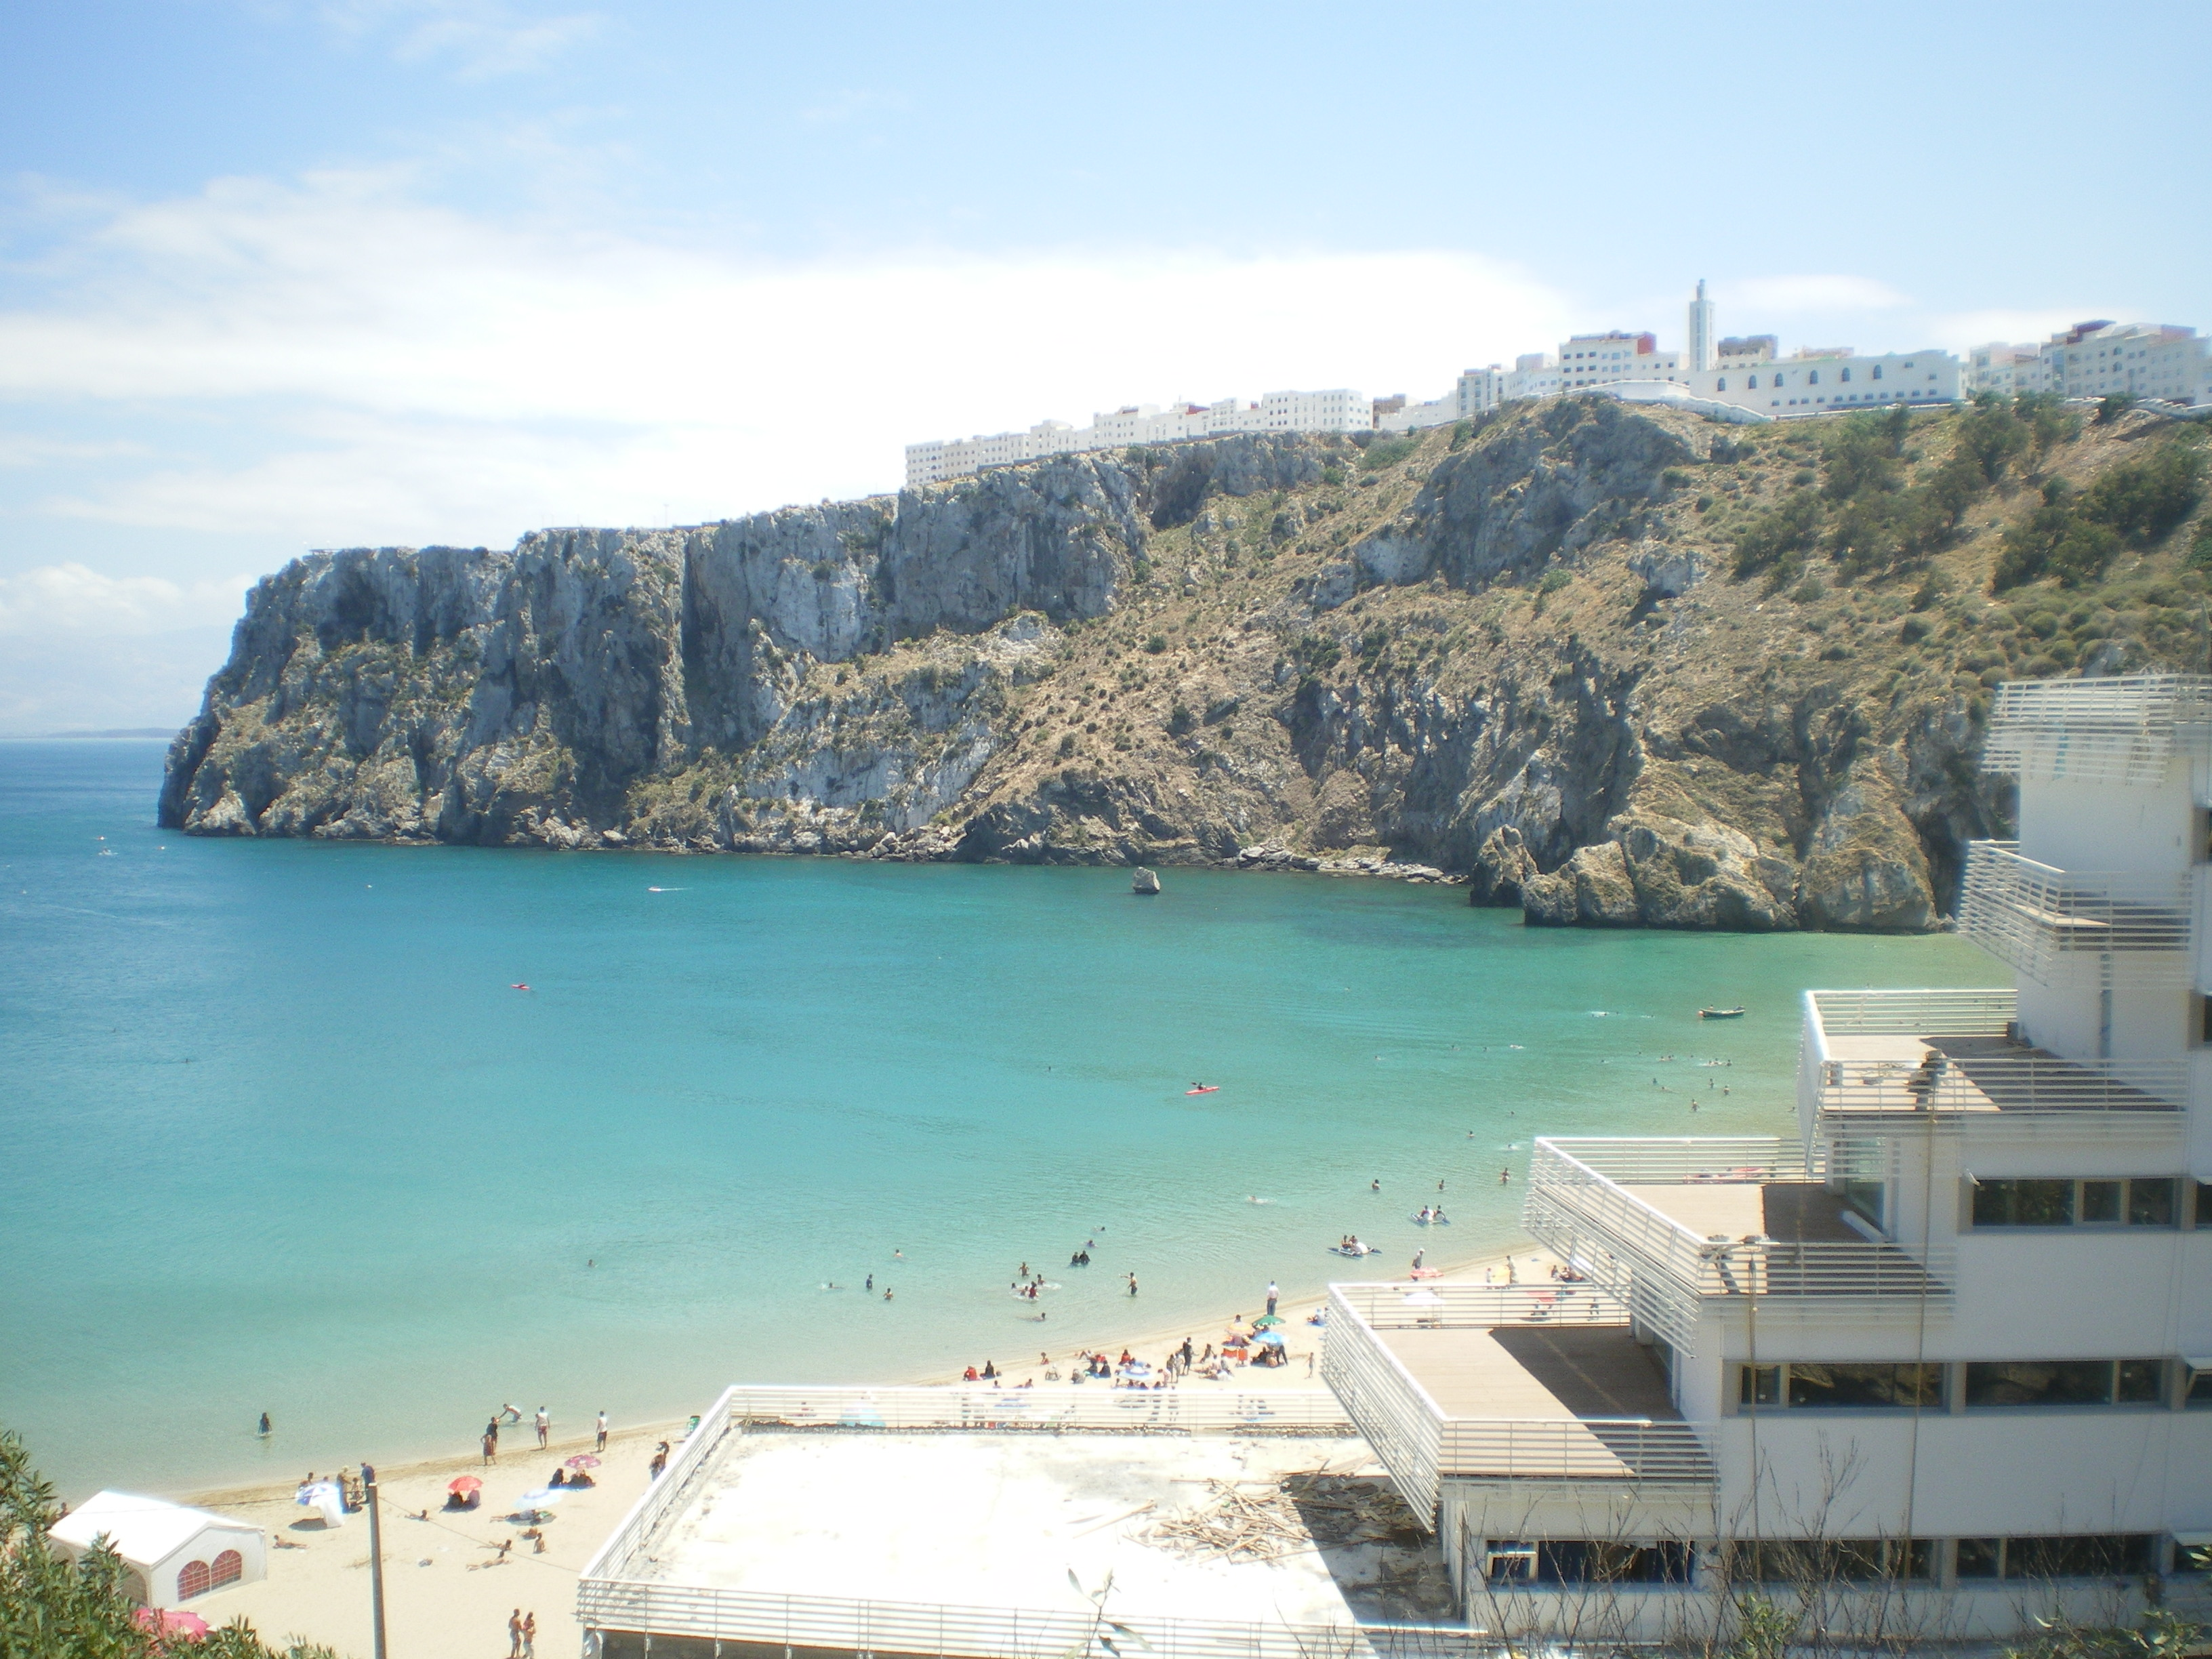 File une plage de al hoceima jpg wikimedia commons for Taza marruecos fotos